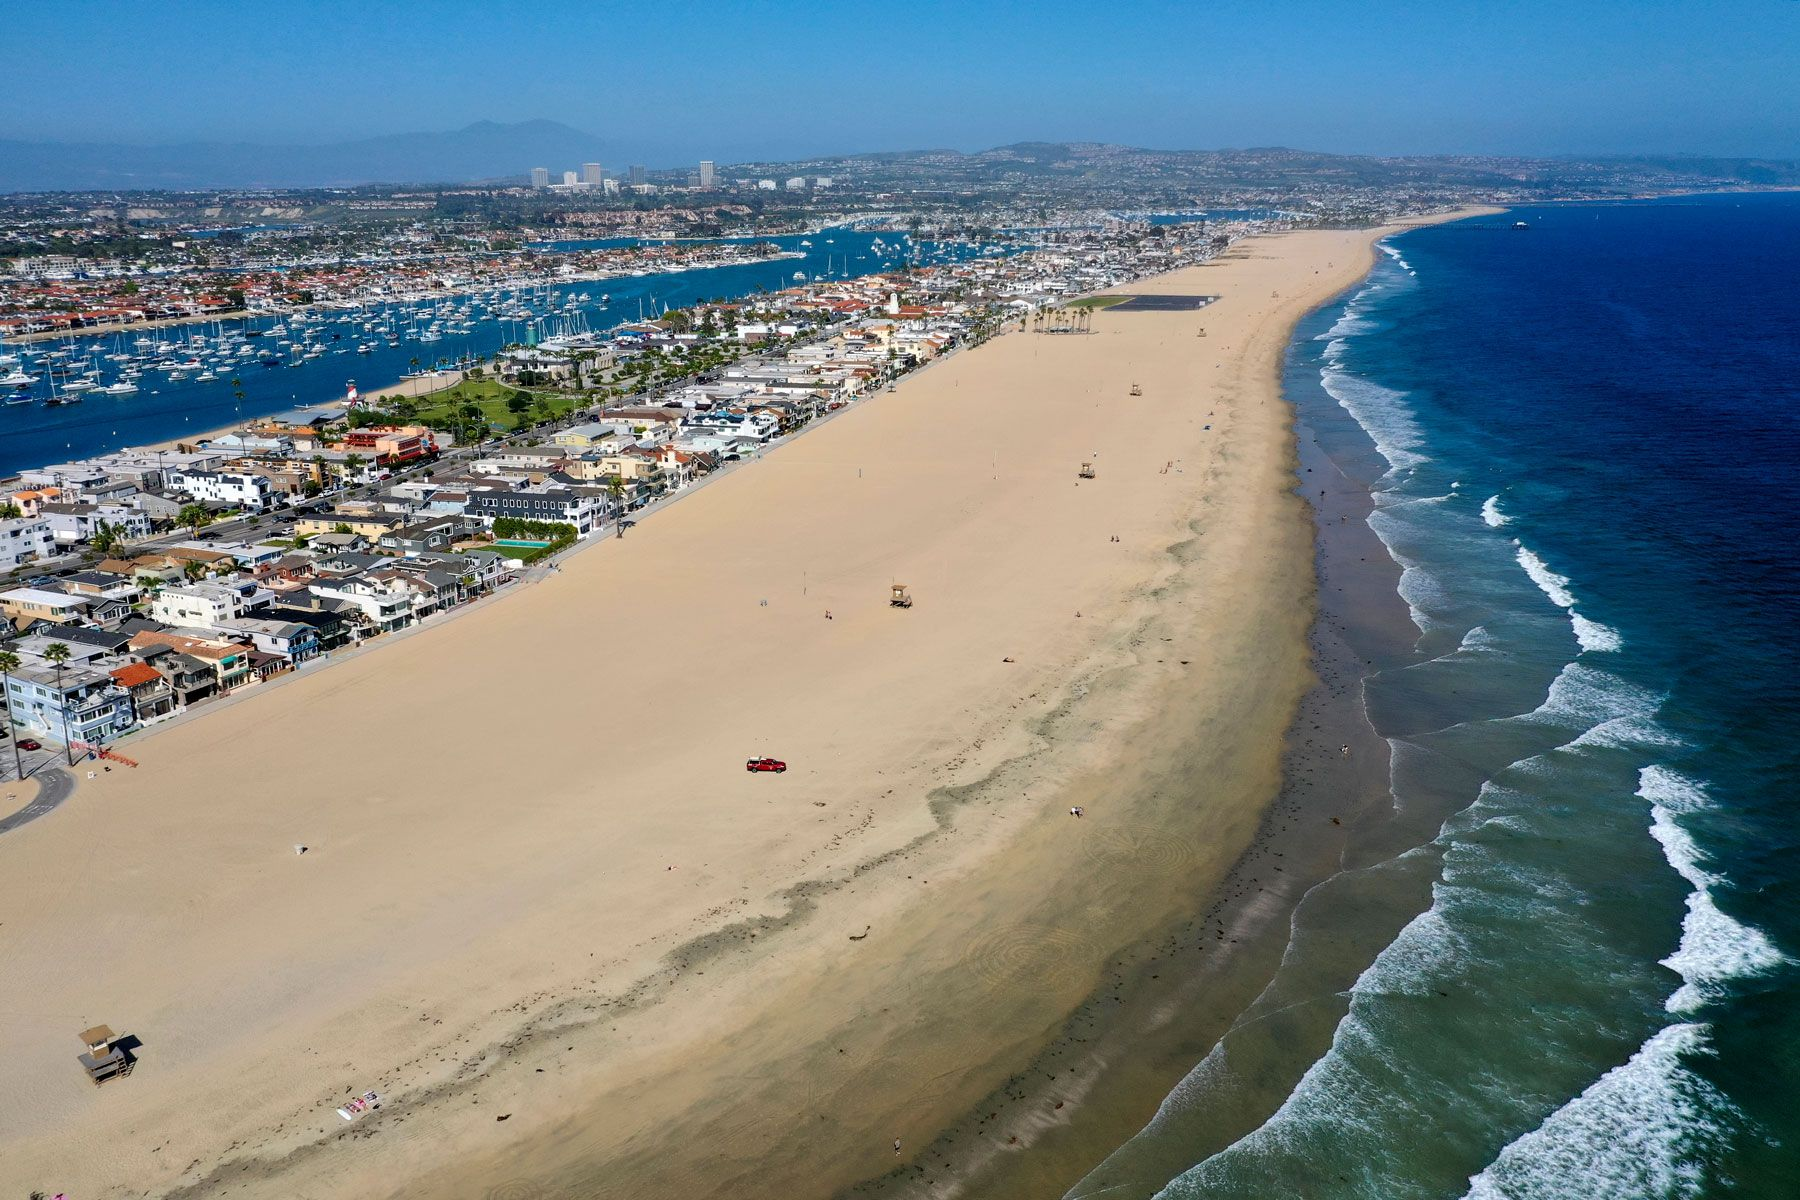 Newport Beach In 2020 Best Weekend Getaways Weekend Getaway Trips Relaxing Weekend Getaways